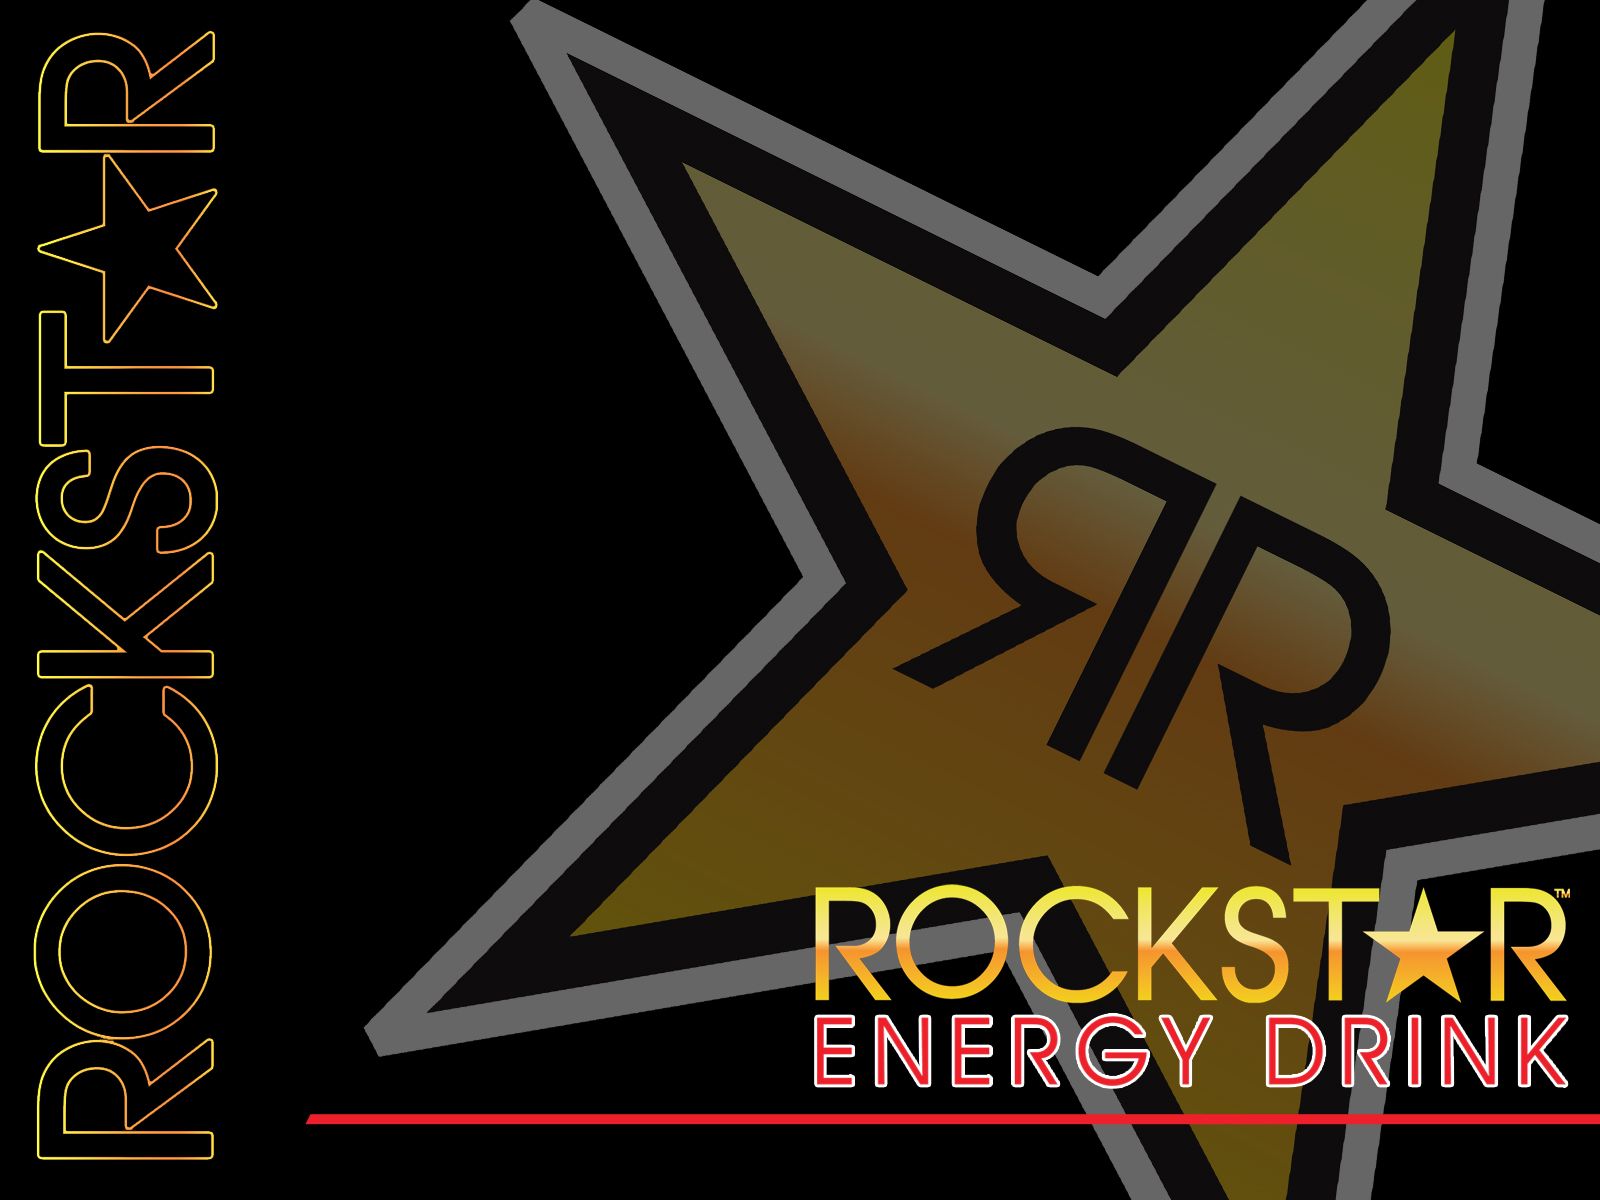 Rockstar Energy Drink Wallpaper HD Widescreen For PC ...